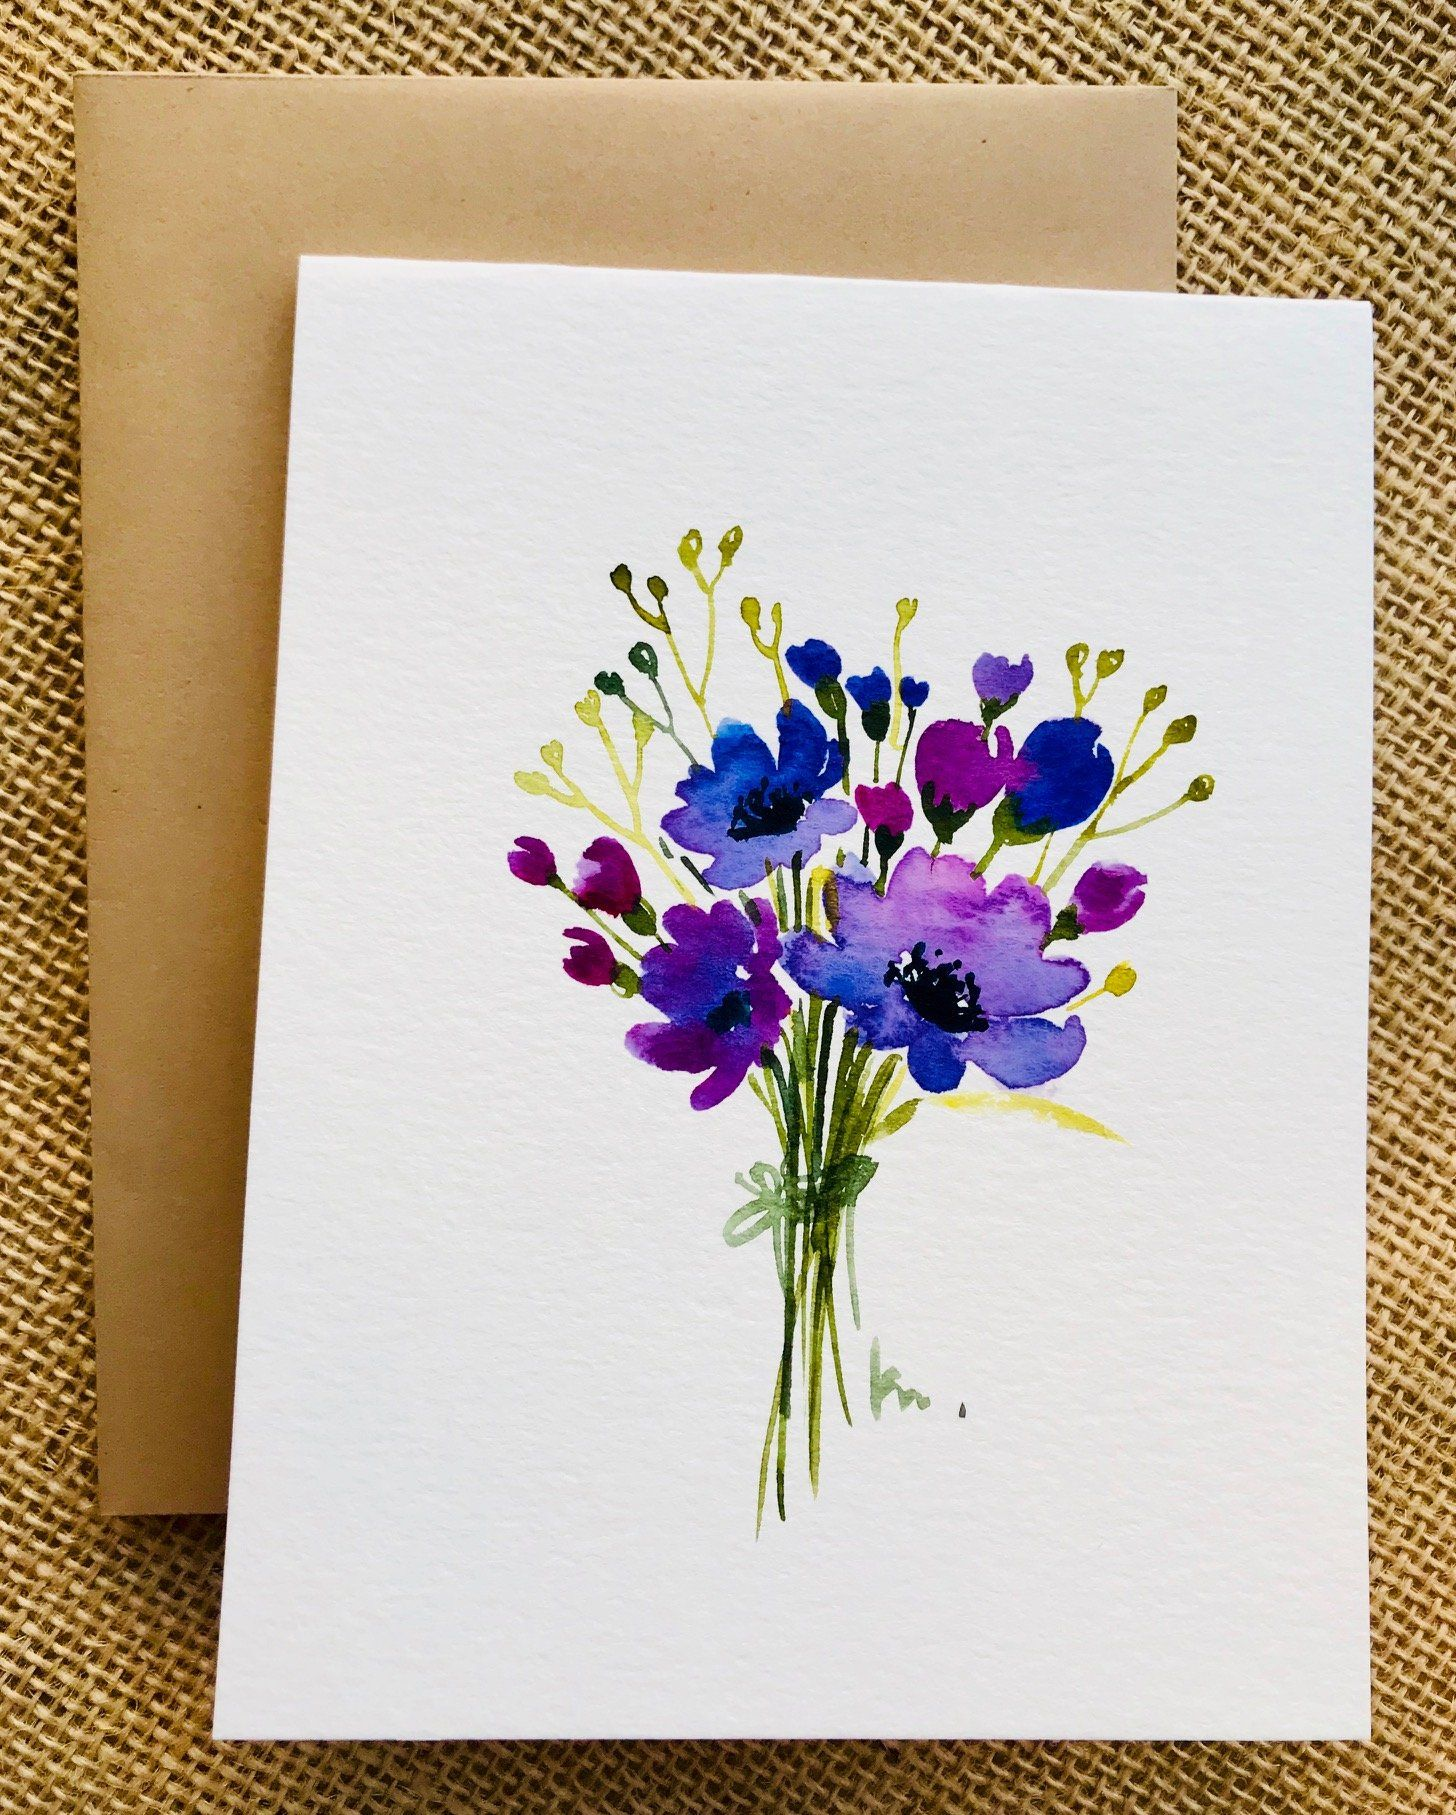 Birthday Card Painting : birthday, painting, Painted, Greeting, Cards, Flowers, Watercolor, Cards,, Flower, Painting